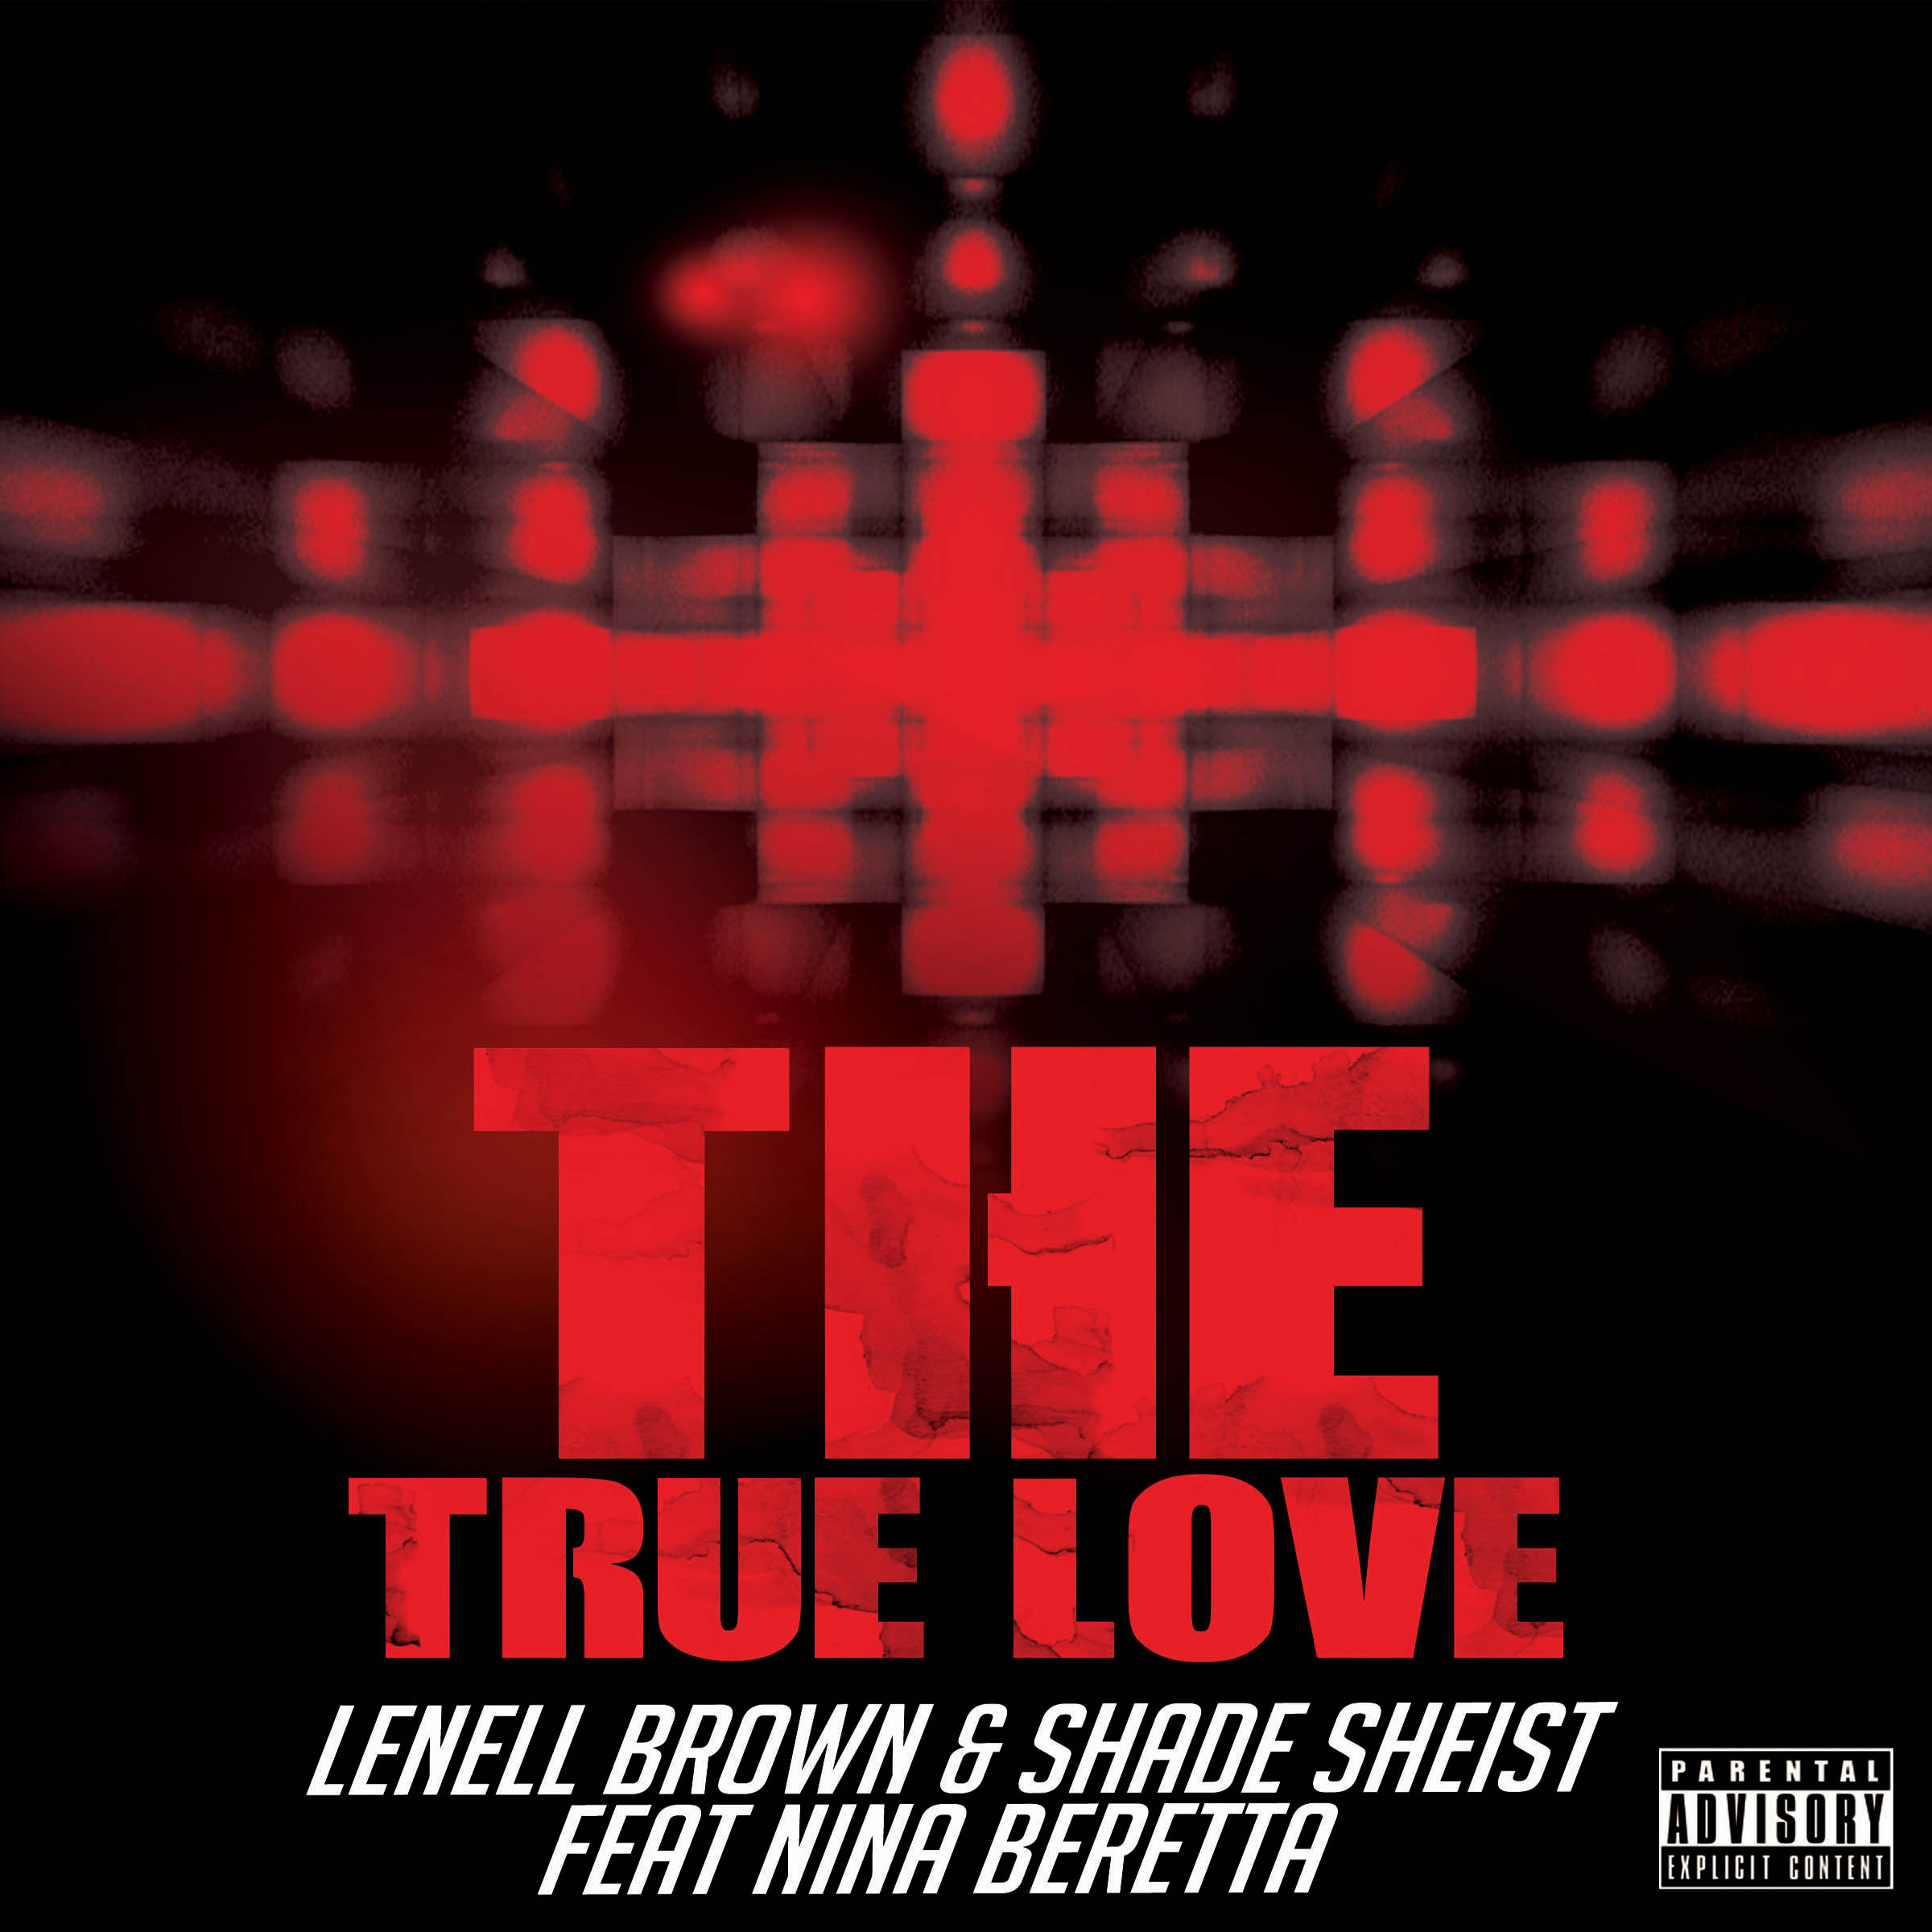 The true love cover